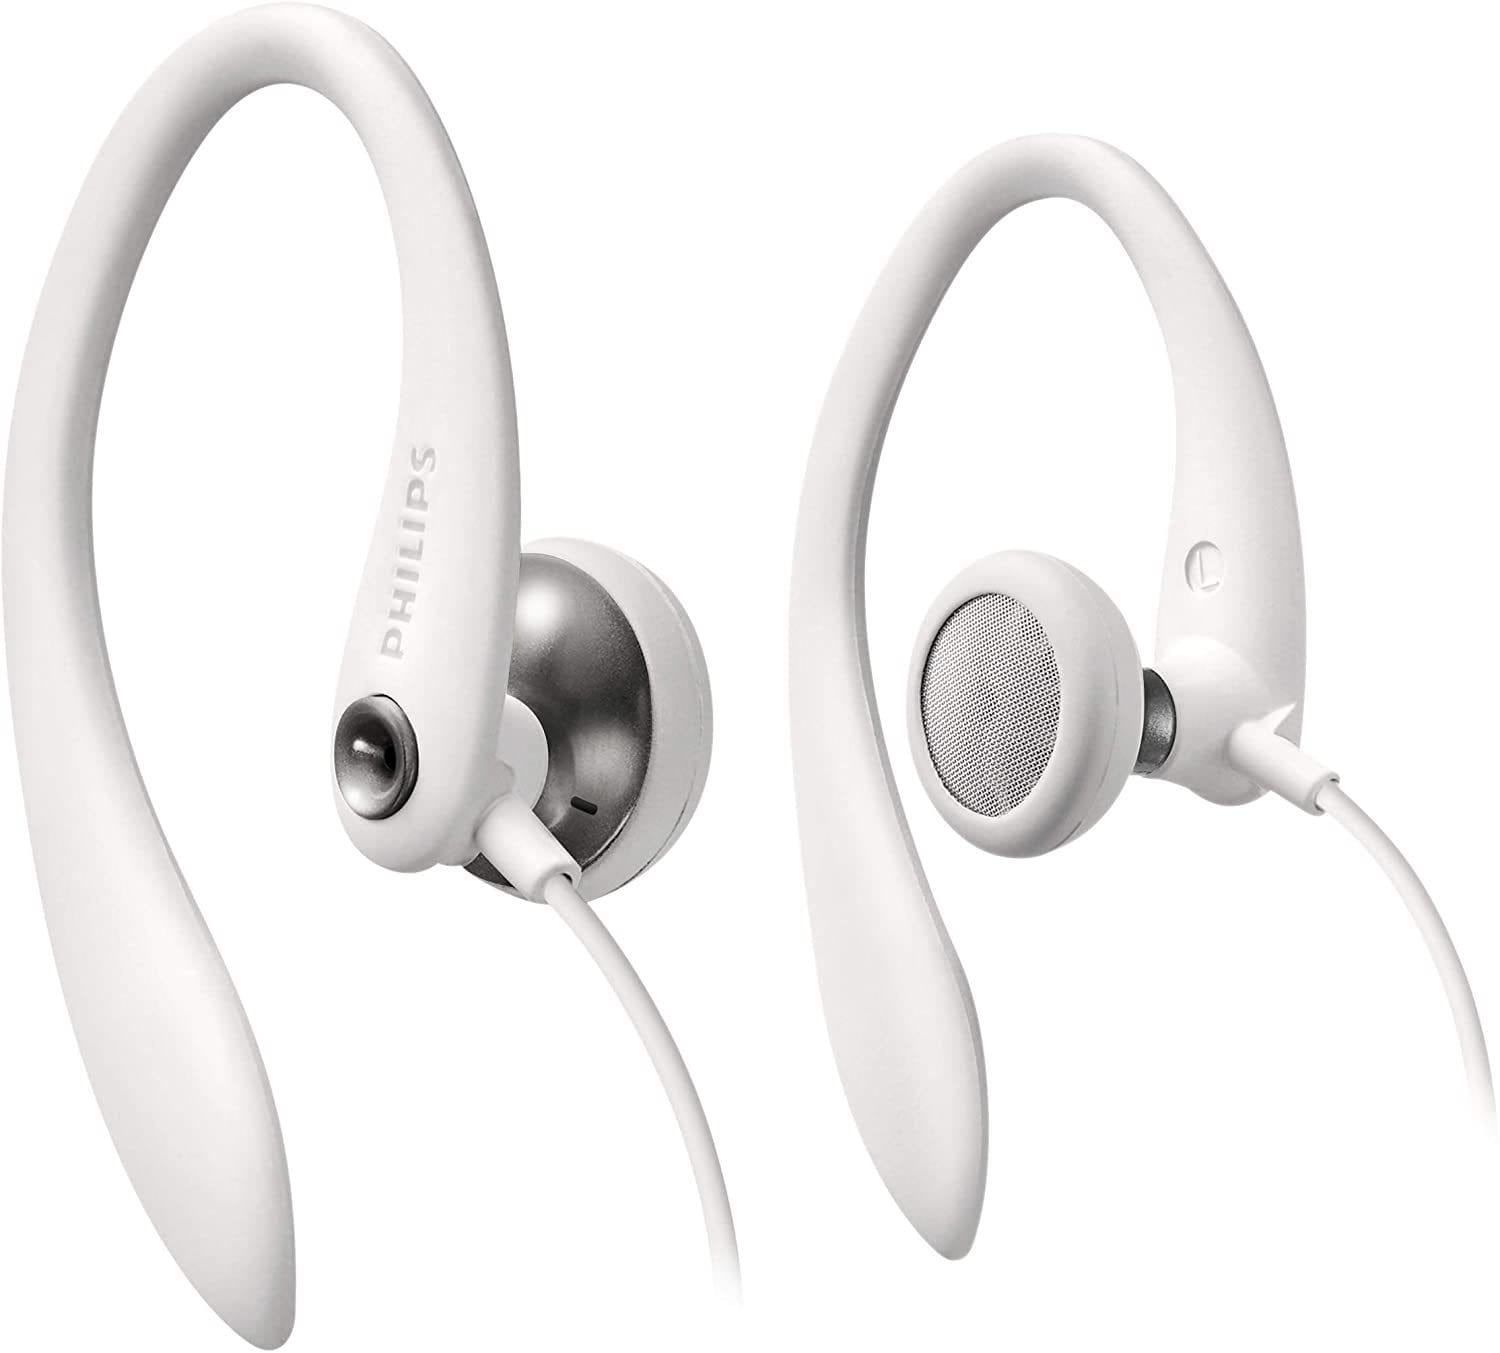 Philips sports headphones SHS3300WT/10 in-ear sports headphones - White [Accessories]